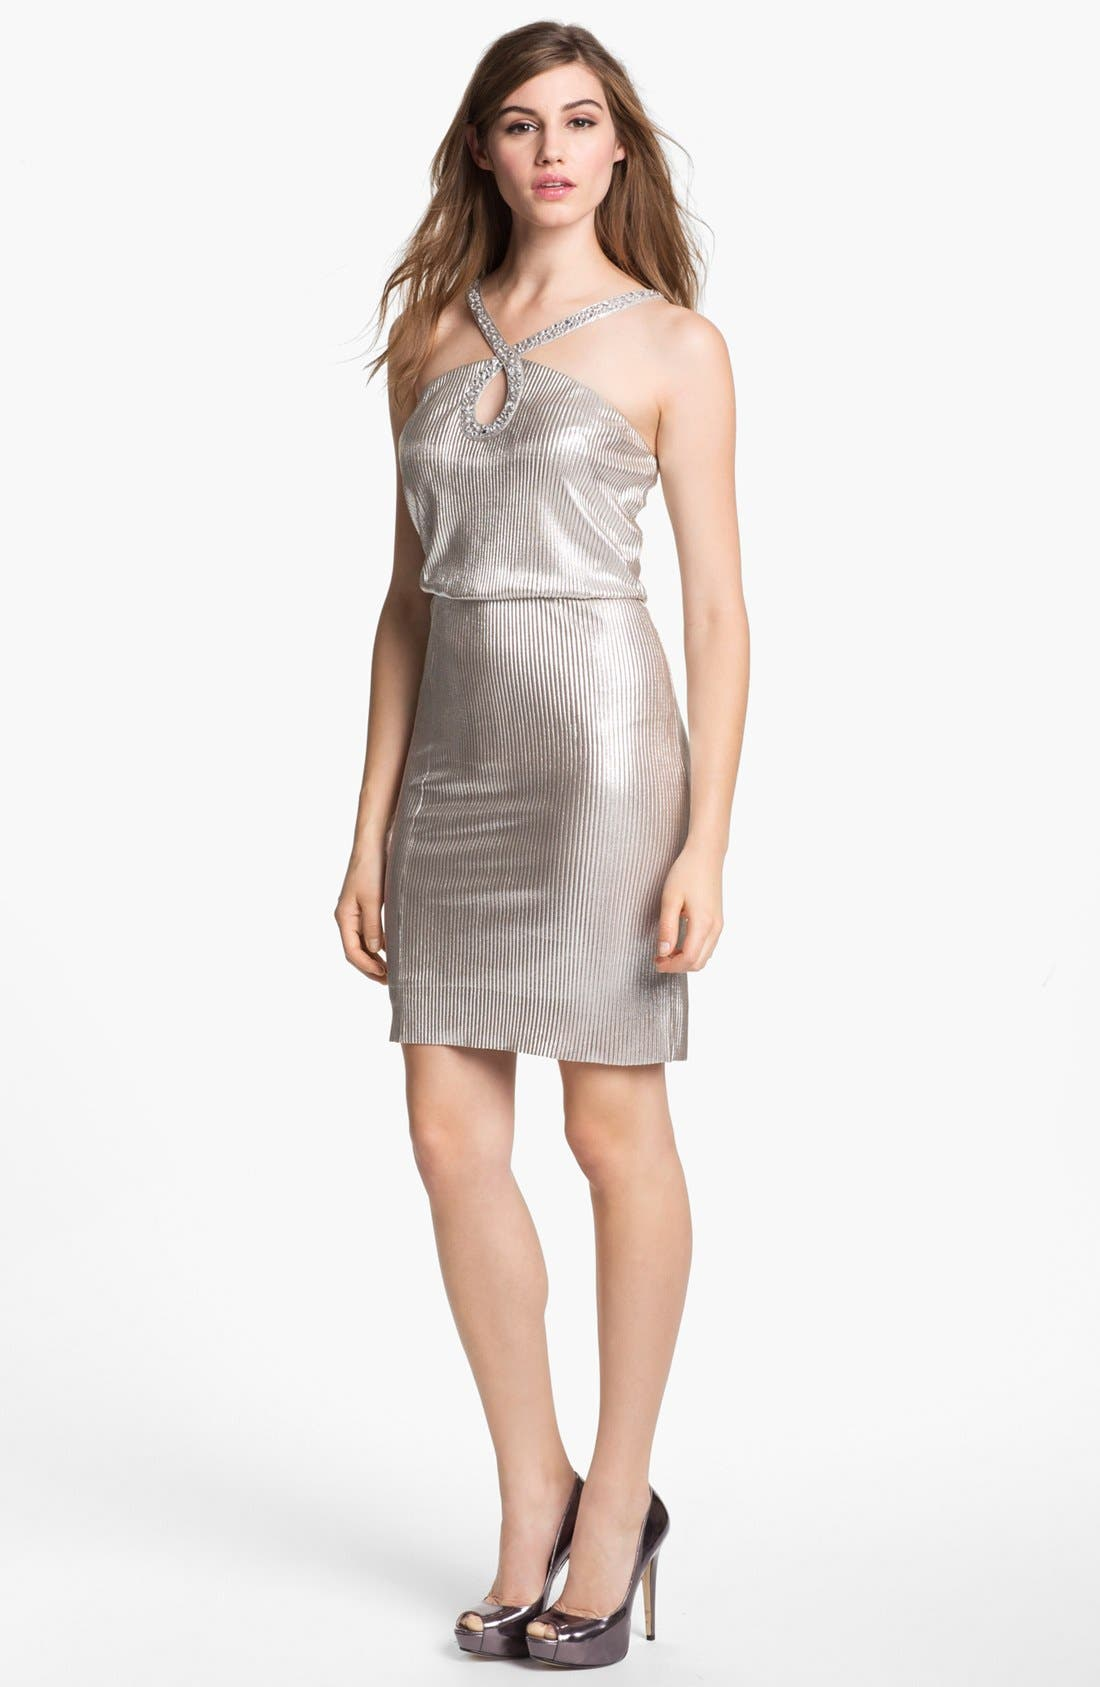 Alternate Image 1 Selected - Hailey by Adrianna Papell Embellished Metallic Dress